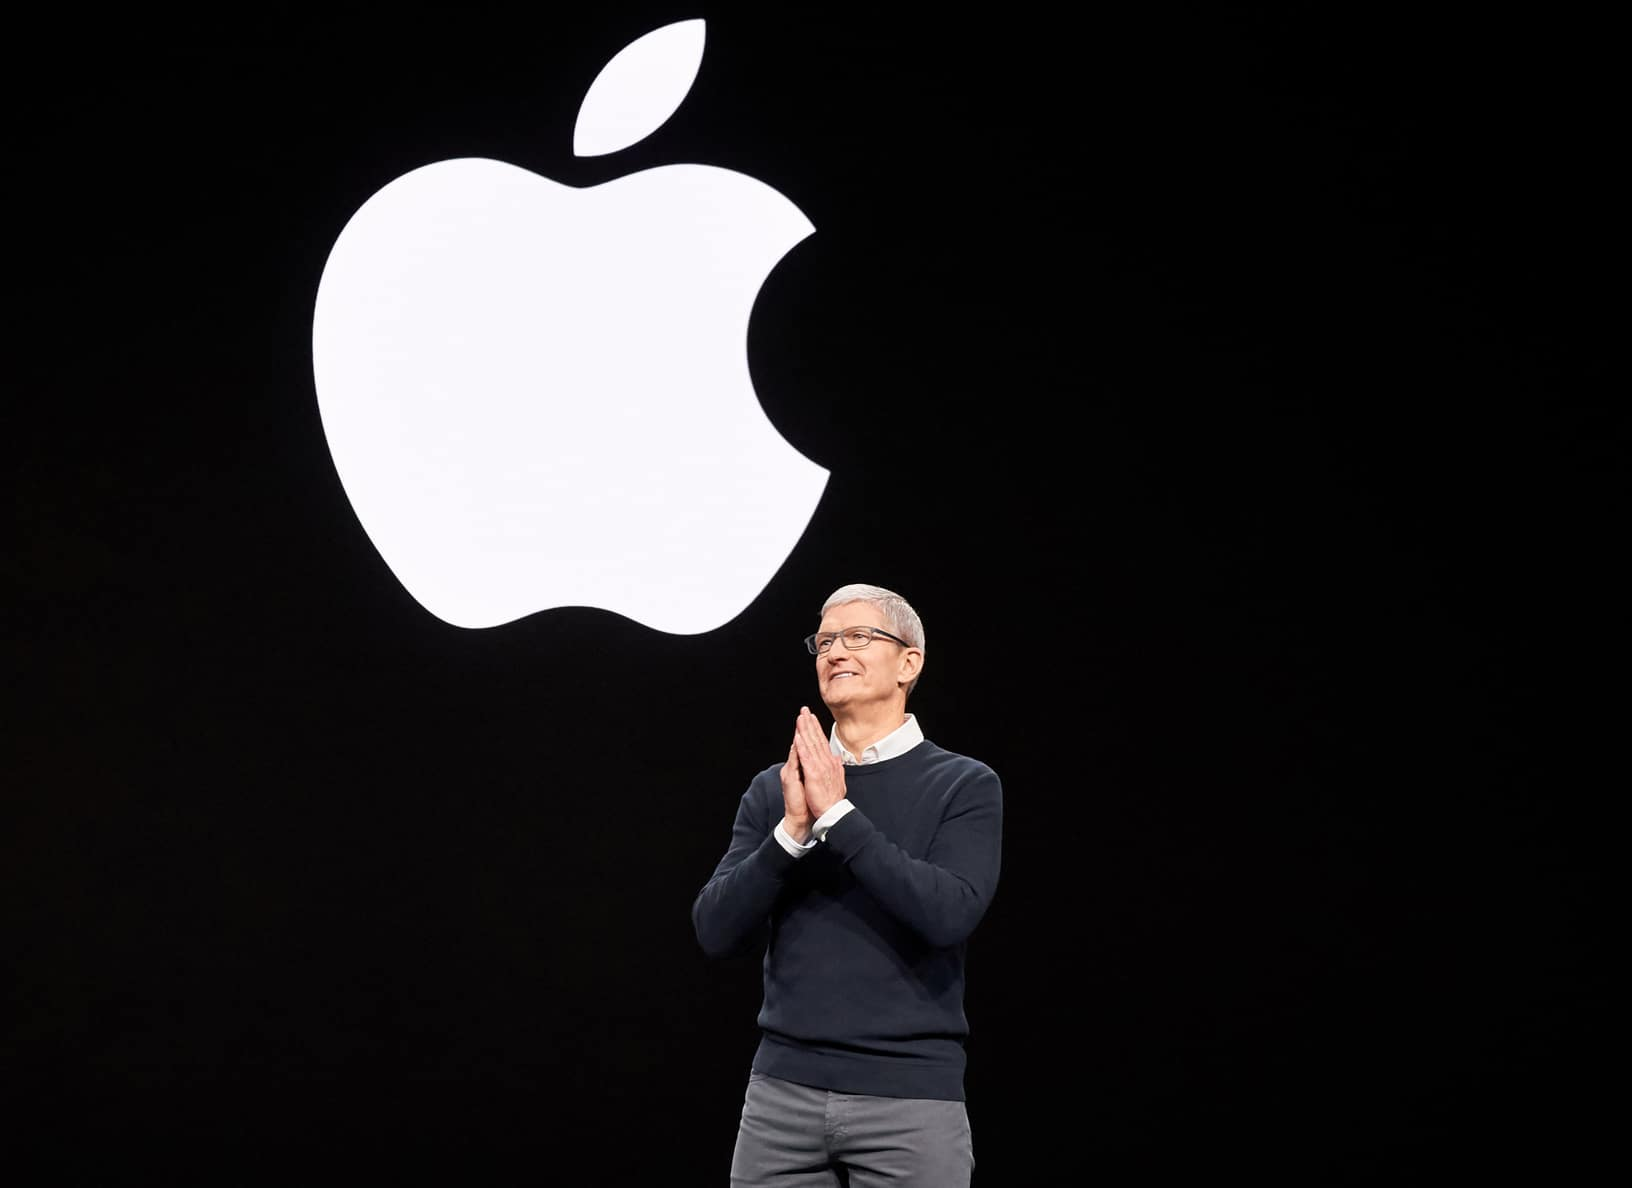 WWDC2020 to be Virtual Only – My Take